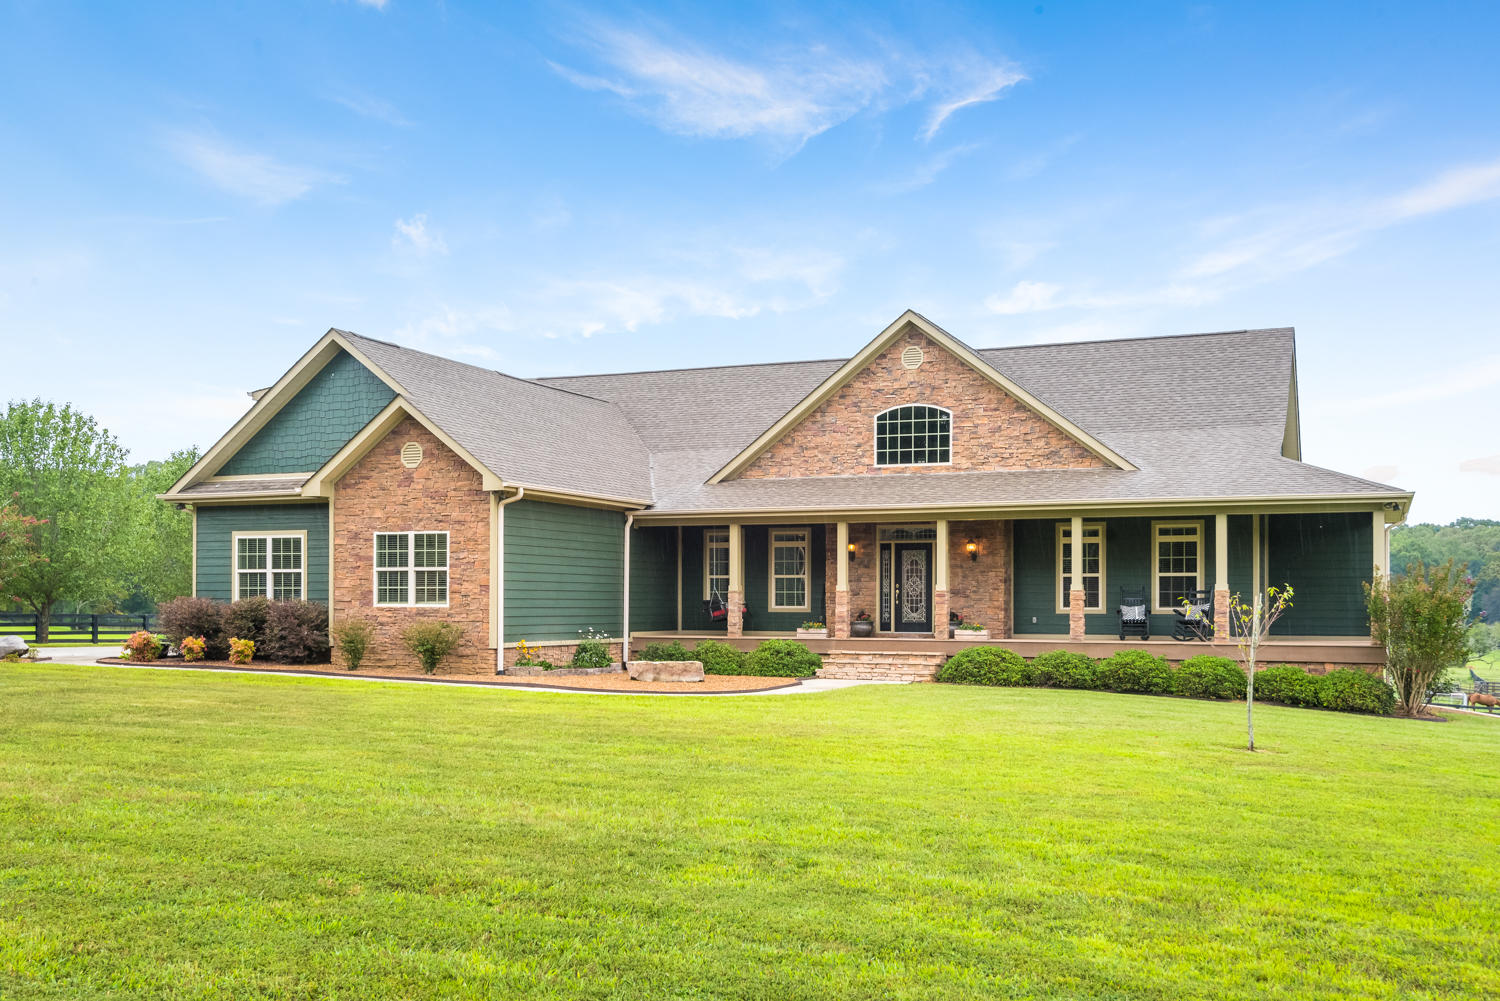 7697 Gamble Rd, Georgetown, TN 37336